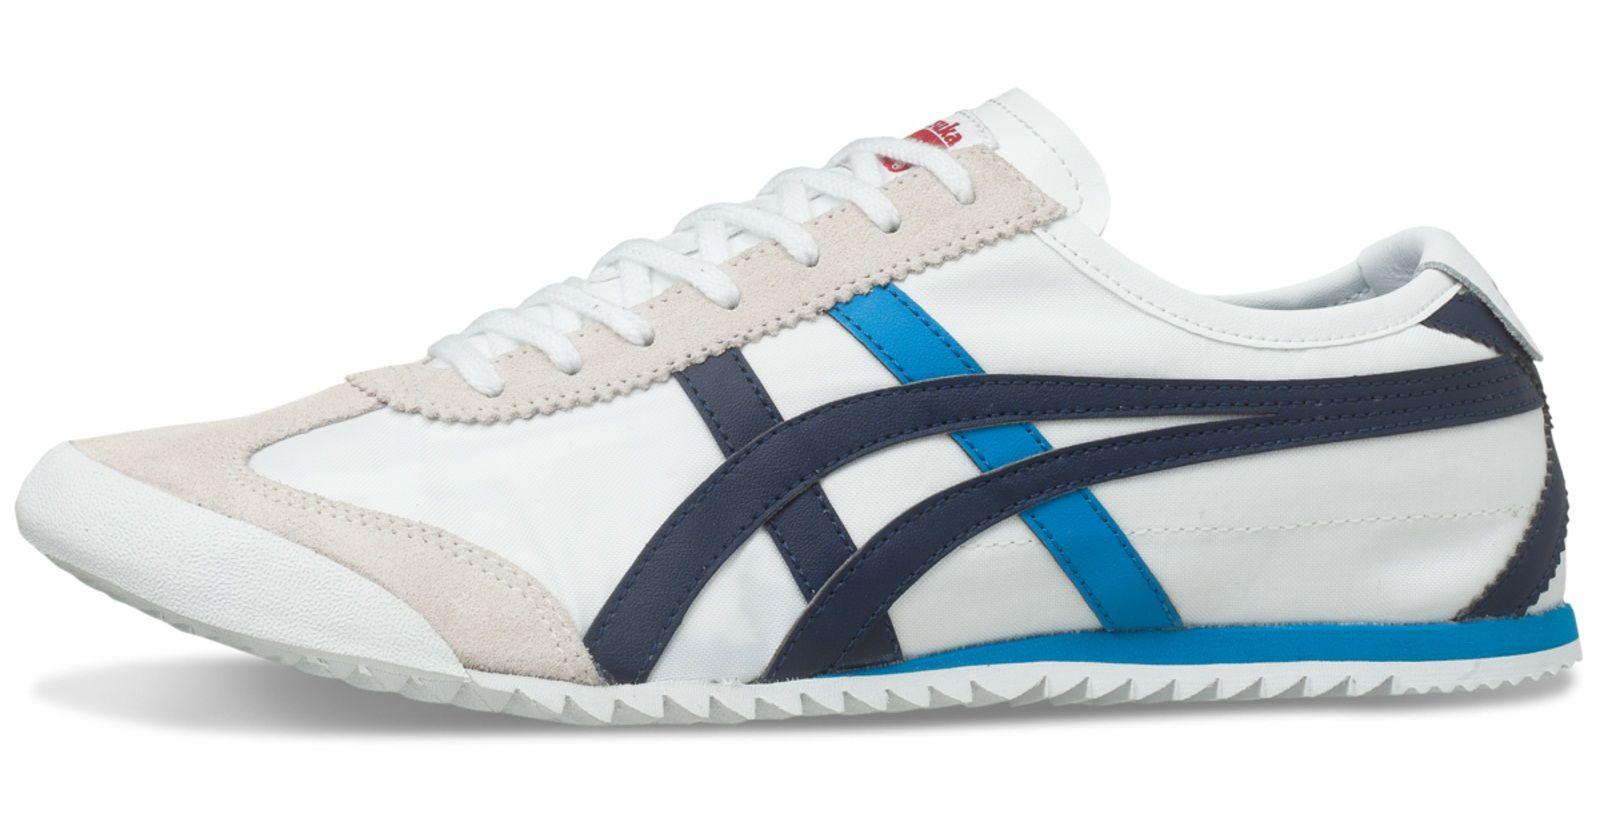 onitsuka tiger mexico 66 dx edition